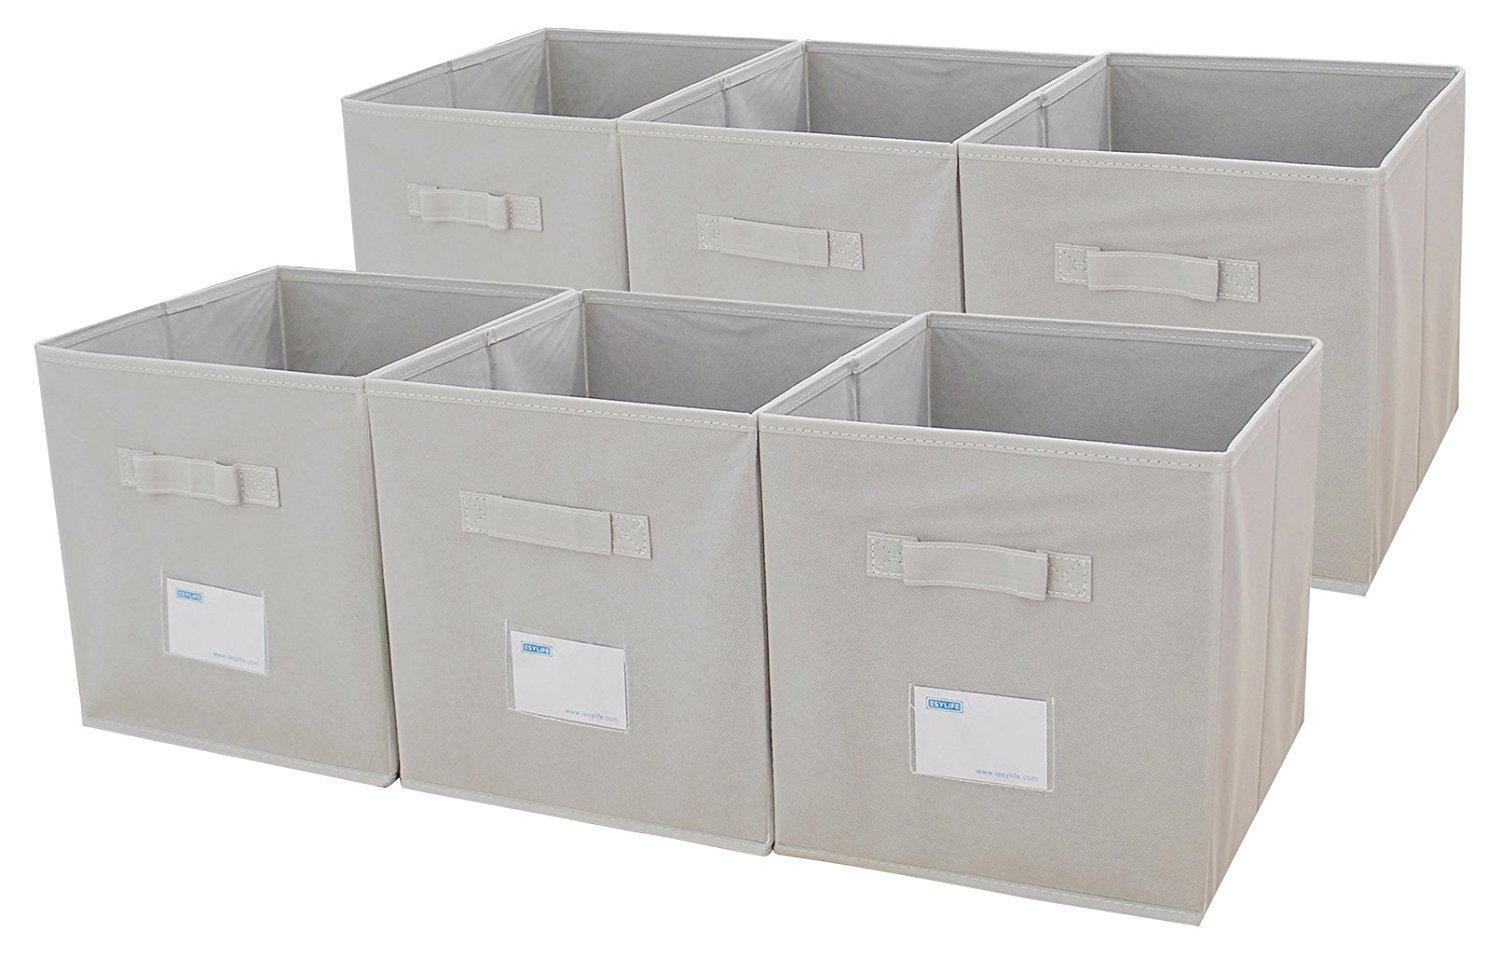 ESYLIFE Foldable Fabric Storage Cubes 6 Pack Cloth Storage Bins With Label  Holder,Beige